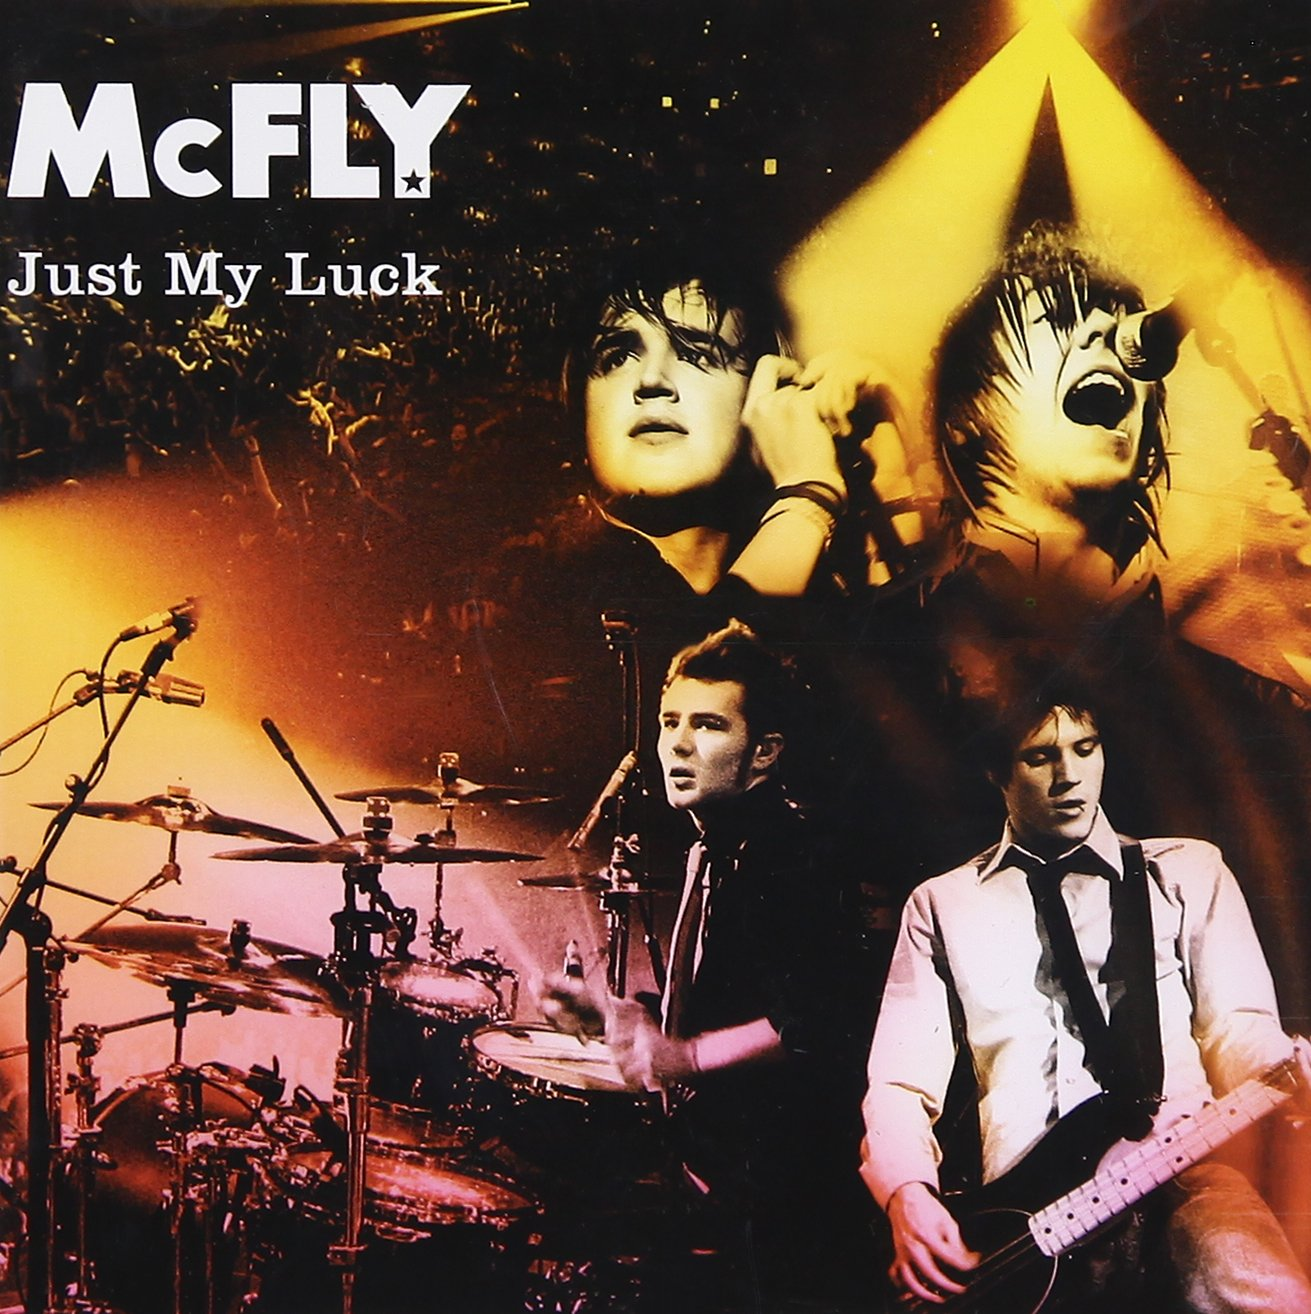 Mcfly - Just My Luck (2006) [FLAC] Download